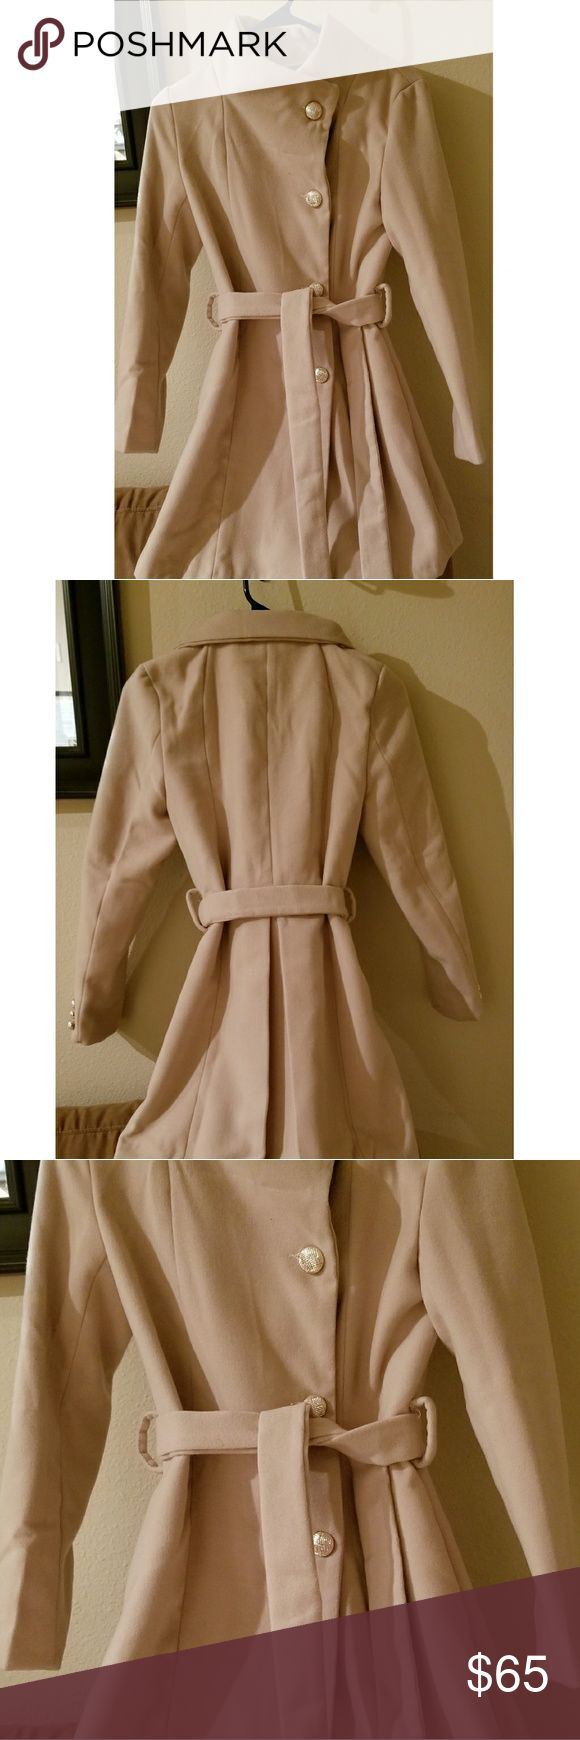 1 hr flash sale! Cream colored coat Coat is a lovely cream color and has gold buttons (which are a bit loose, but that can be an easy fix). The belt cinches the waist for a very flattering look. There is fraying and it needs to be ironed/steamed, but I've hardly worn this item and believe there is still plenty of life left in it. I'm open to offers. Price dropped! Hoping the price makes up for the pilling/fraying. Jackets & Coats Pea Coats